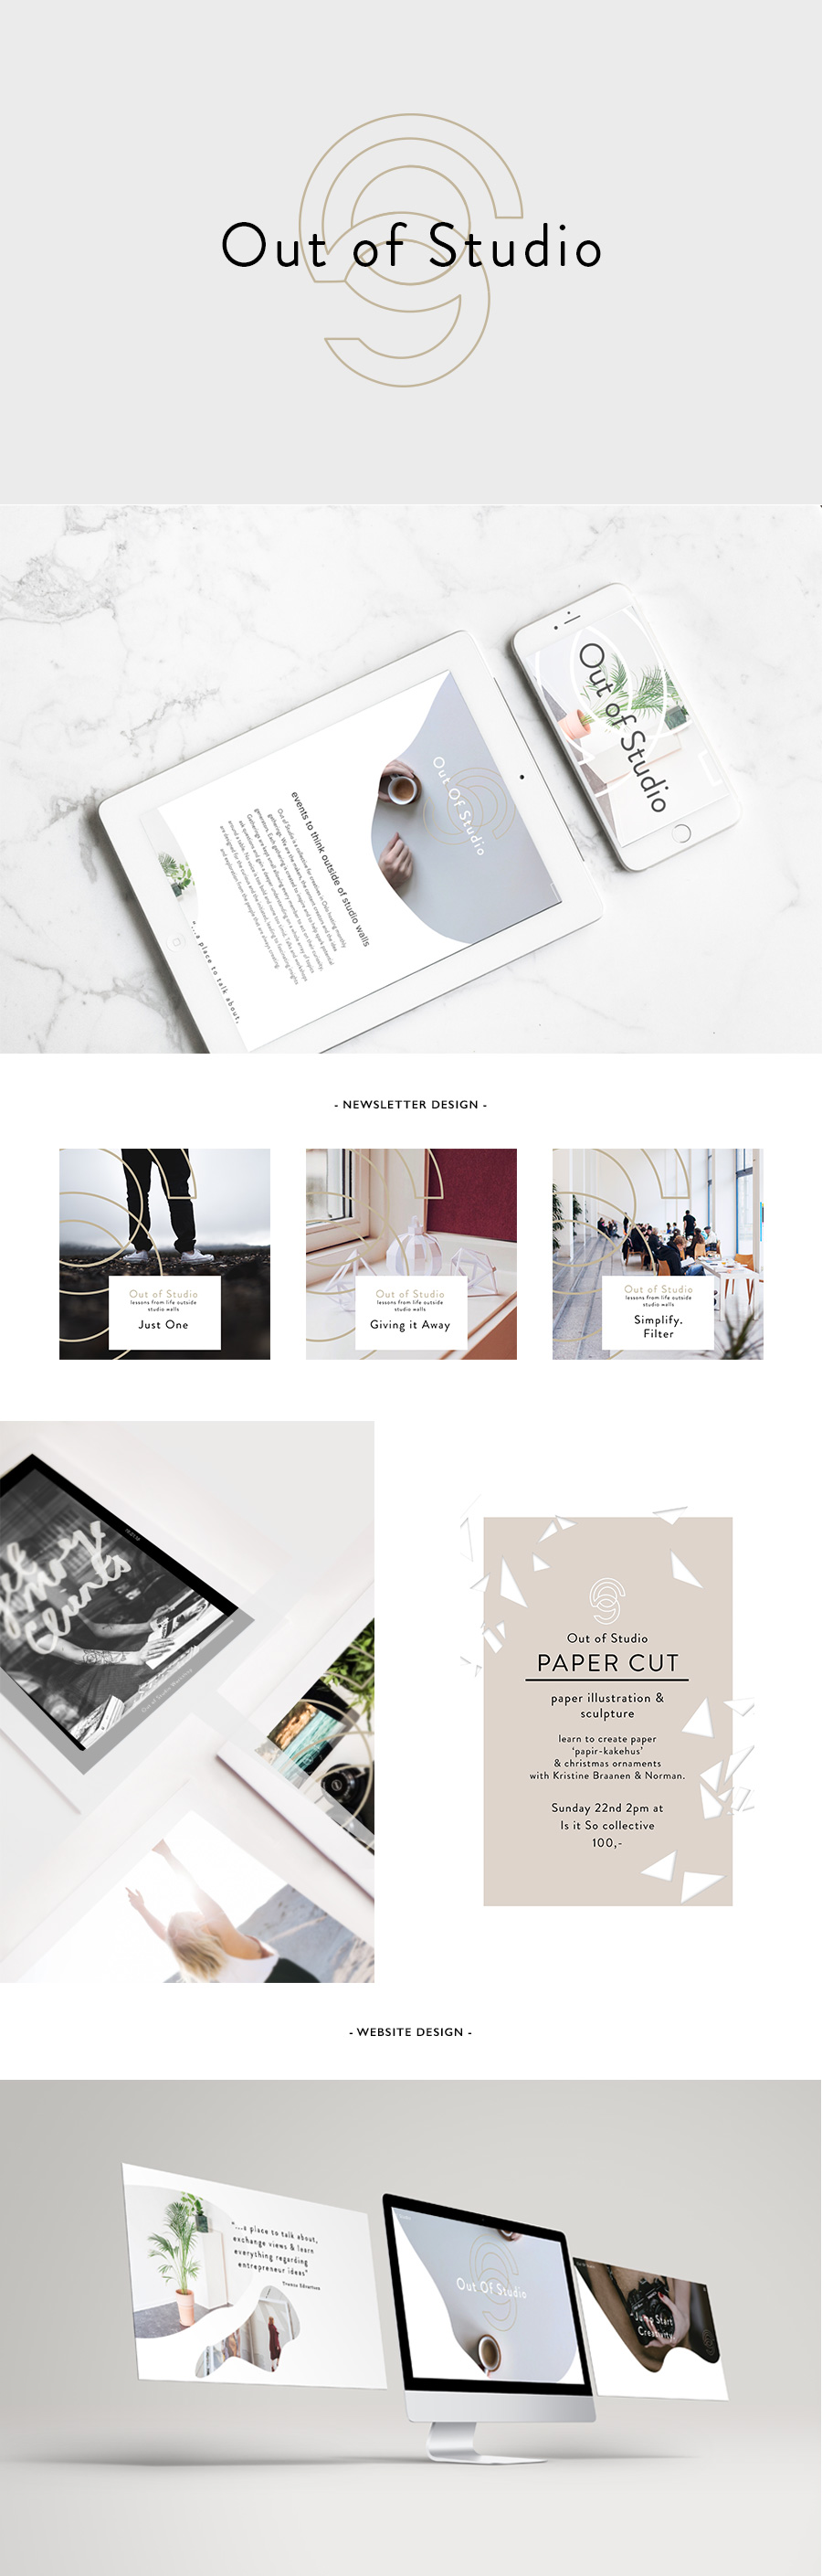 Out of Studio | Creative events in Oslo | Logo and brand design by Rebecca Hawkes